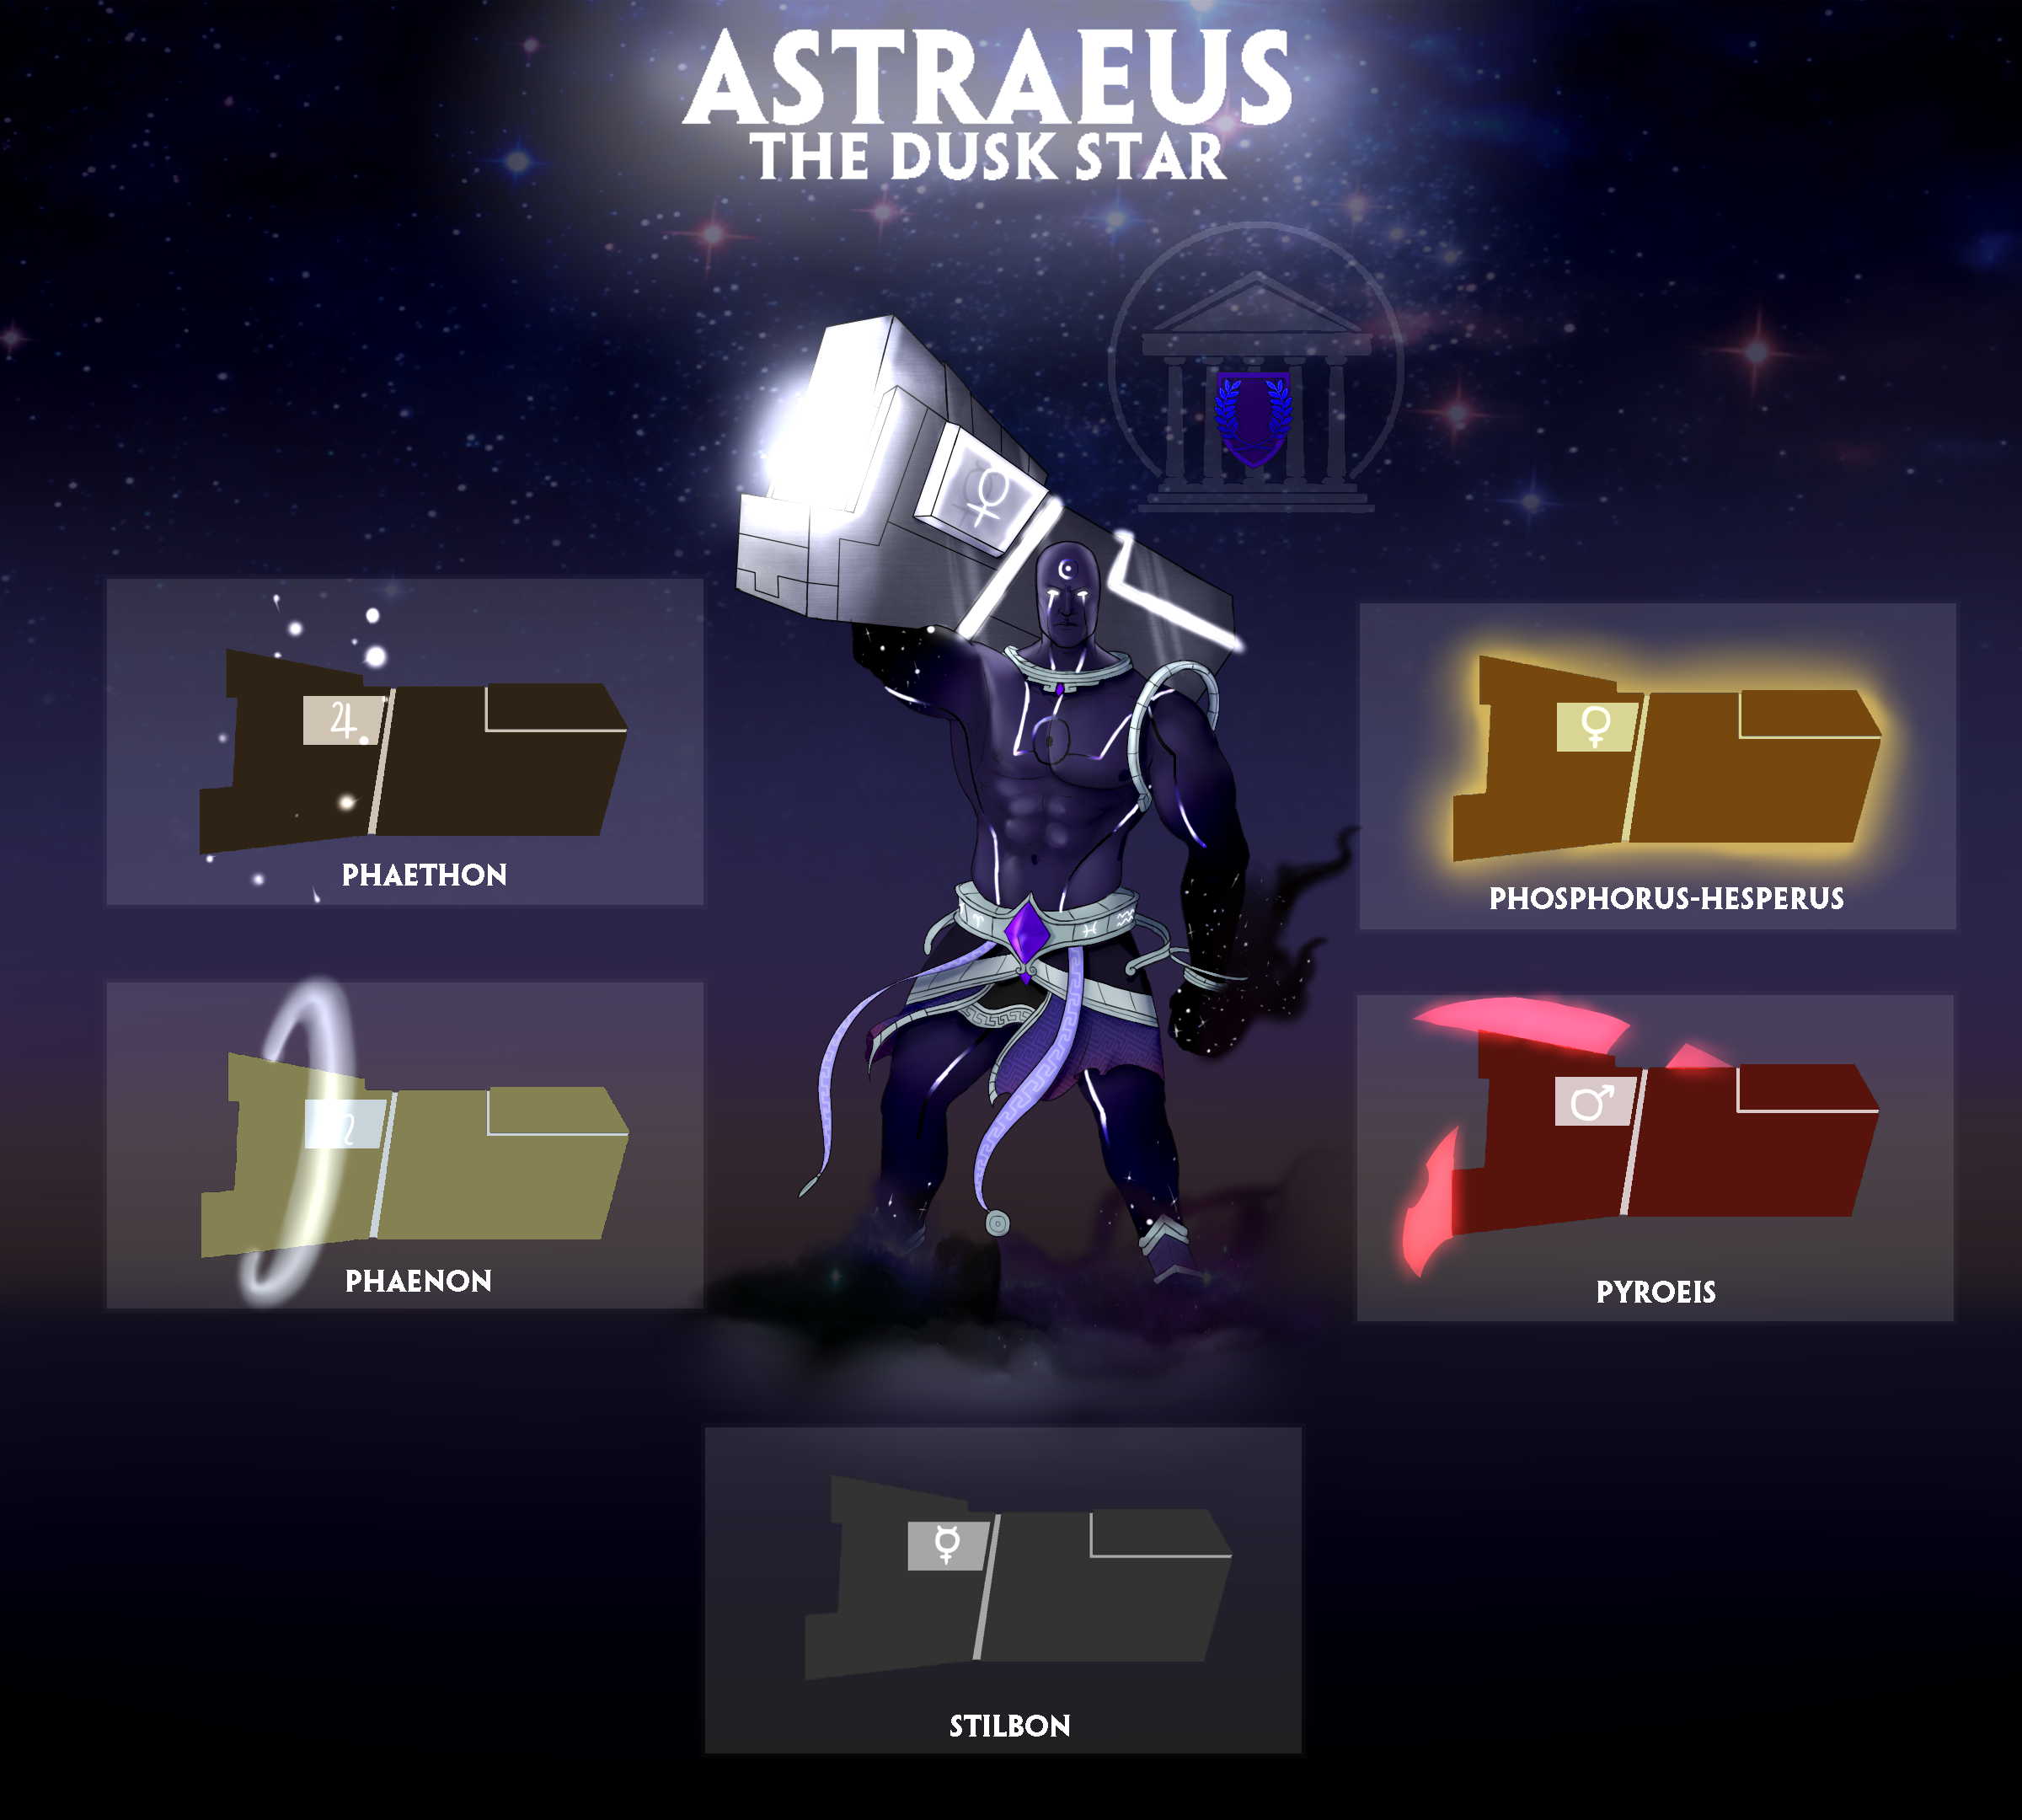 Astraeus The Dusk Star